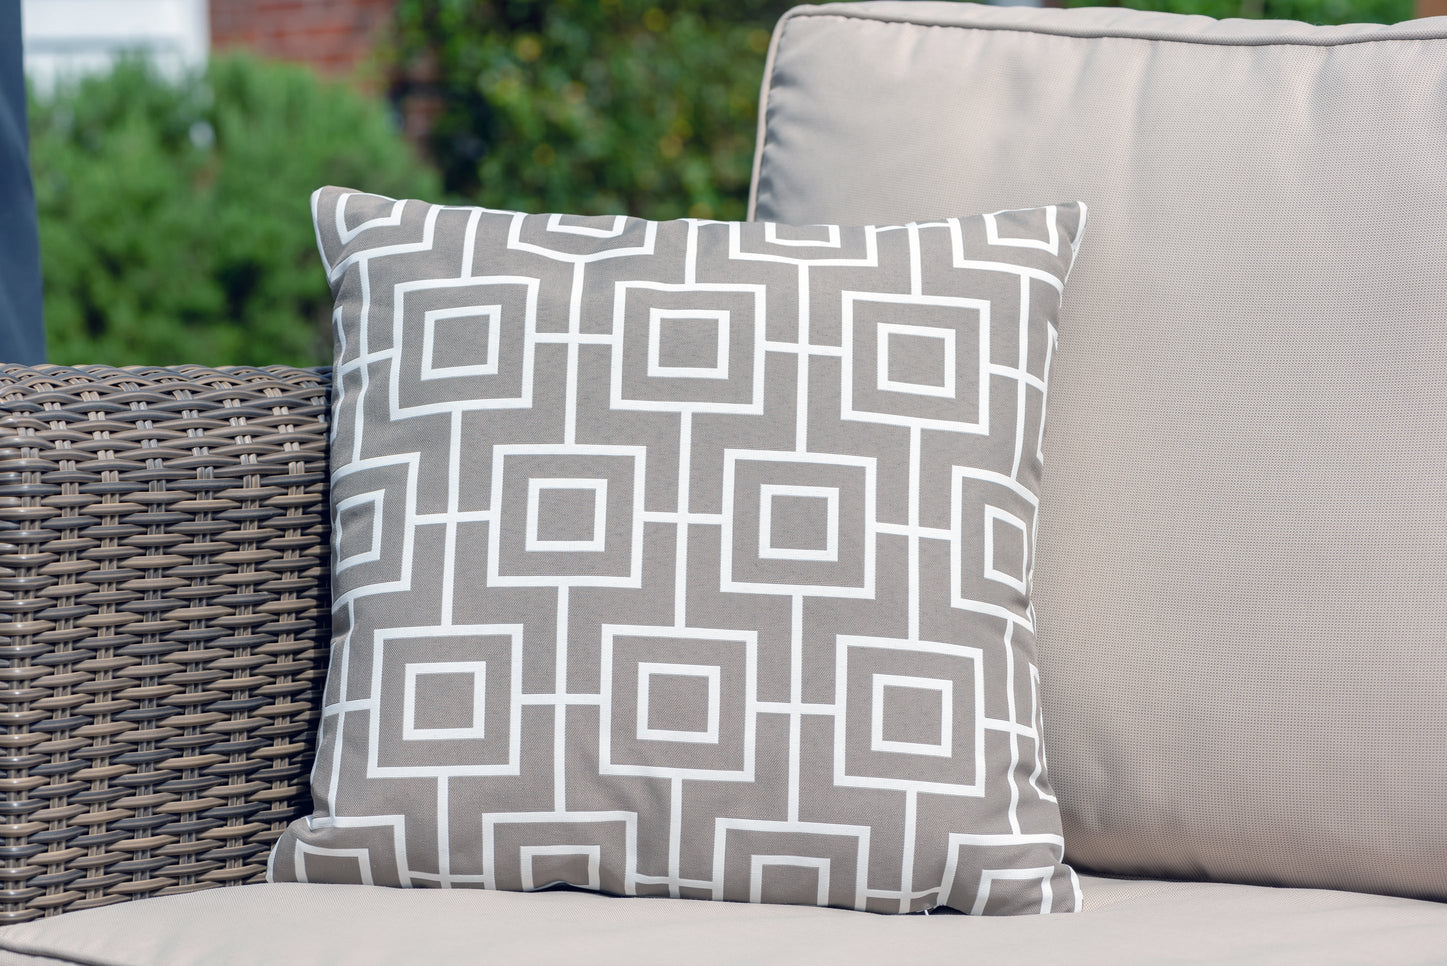 Luxury Cushion in Aztec Pumice